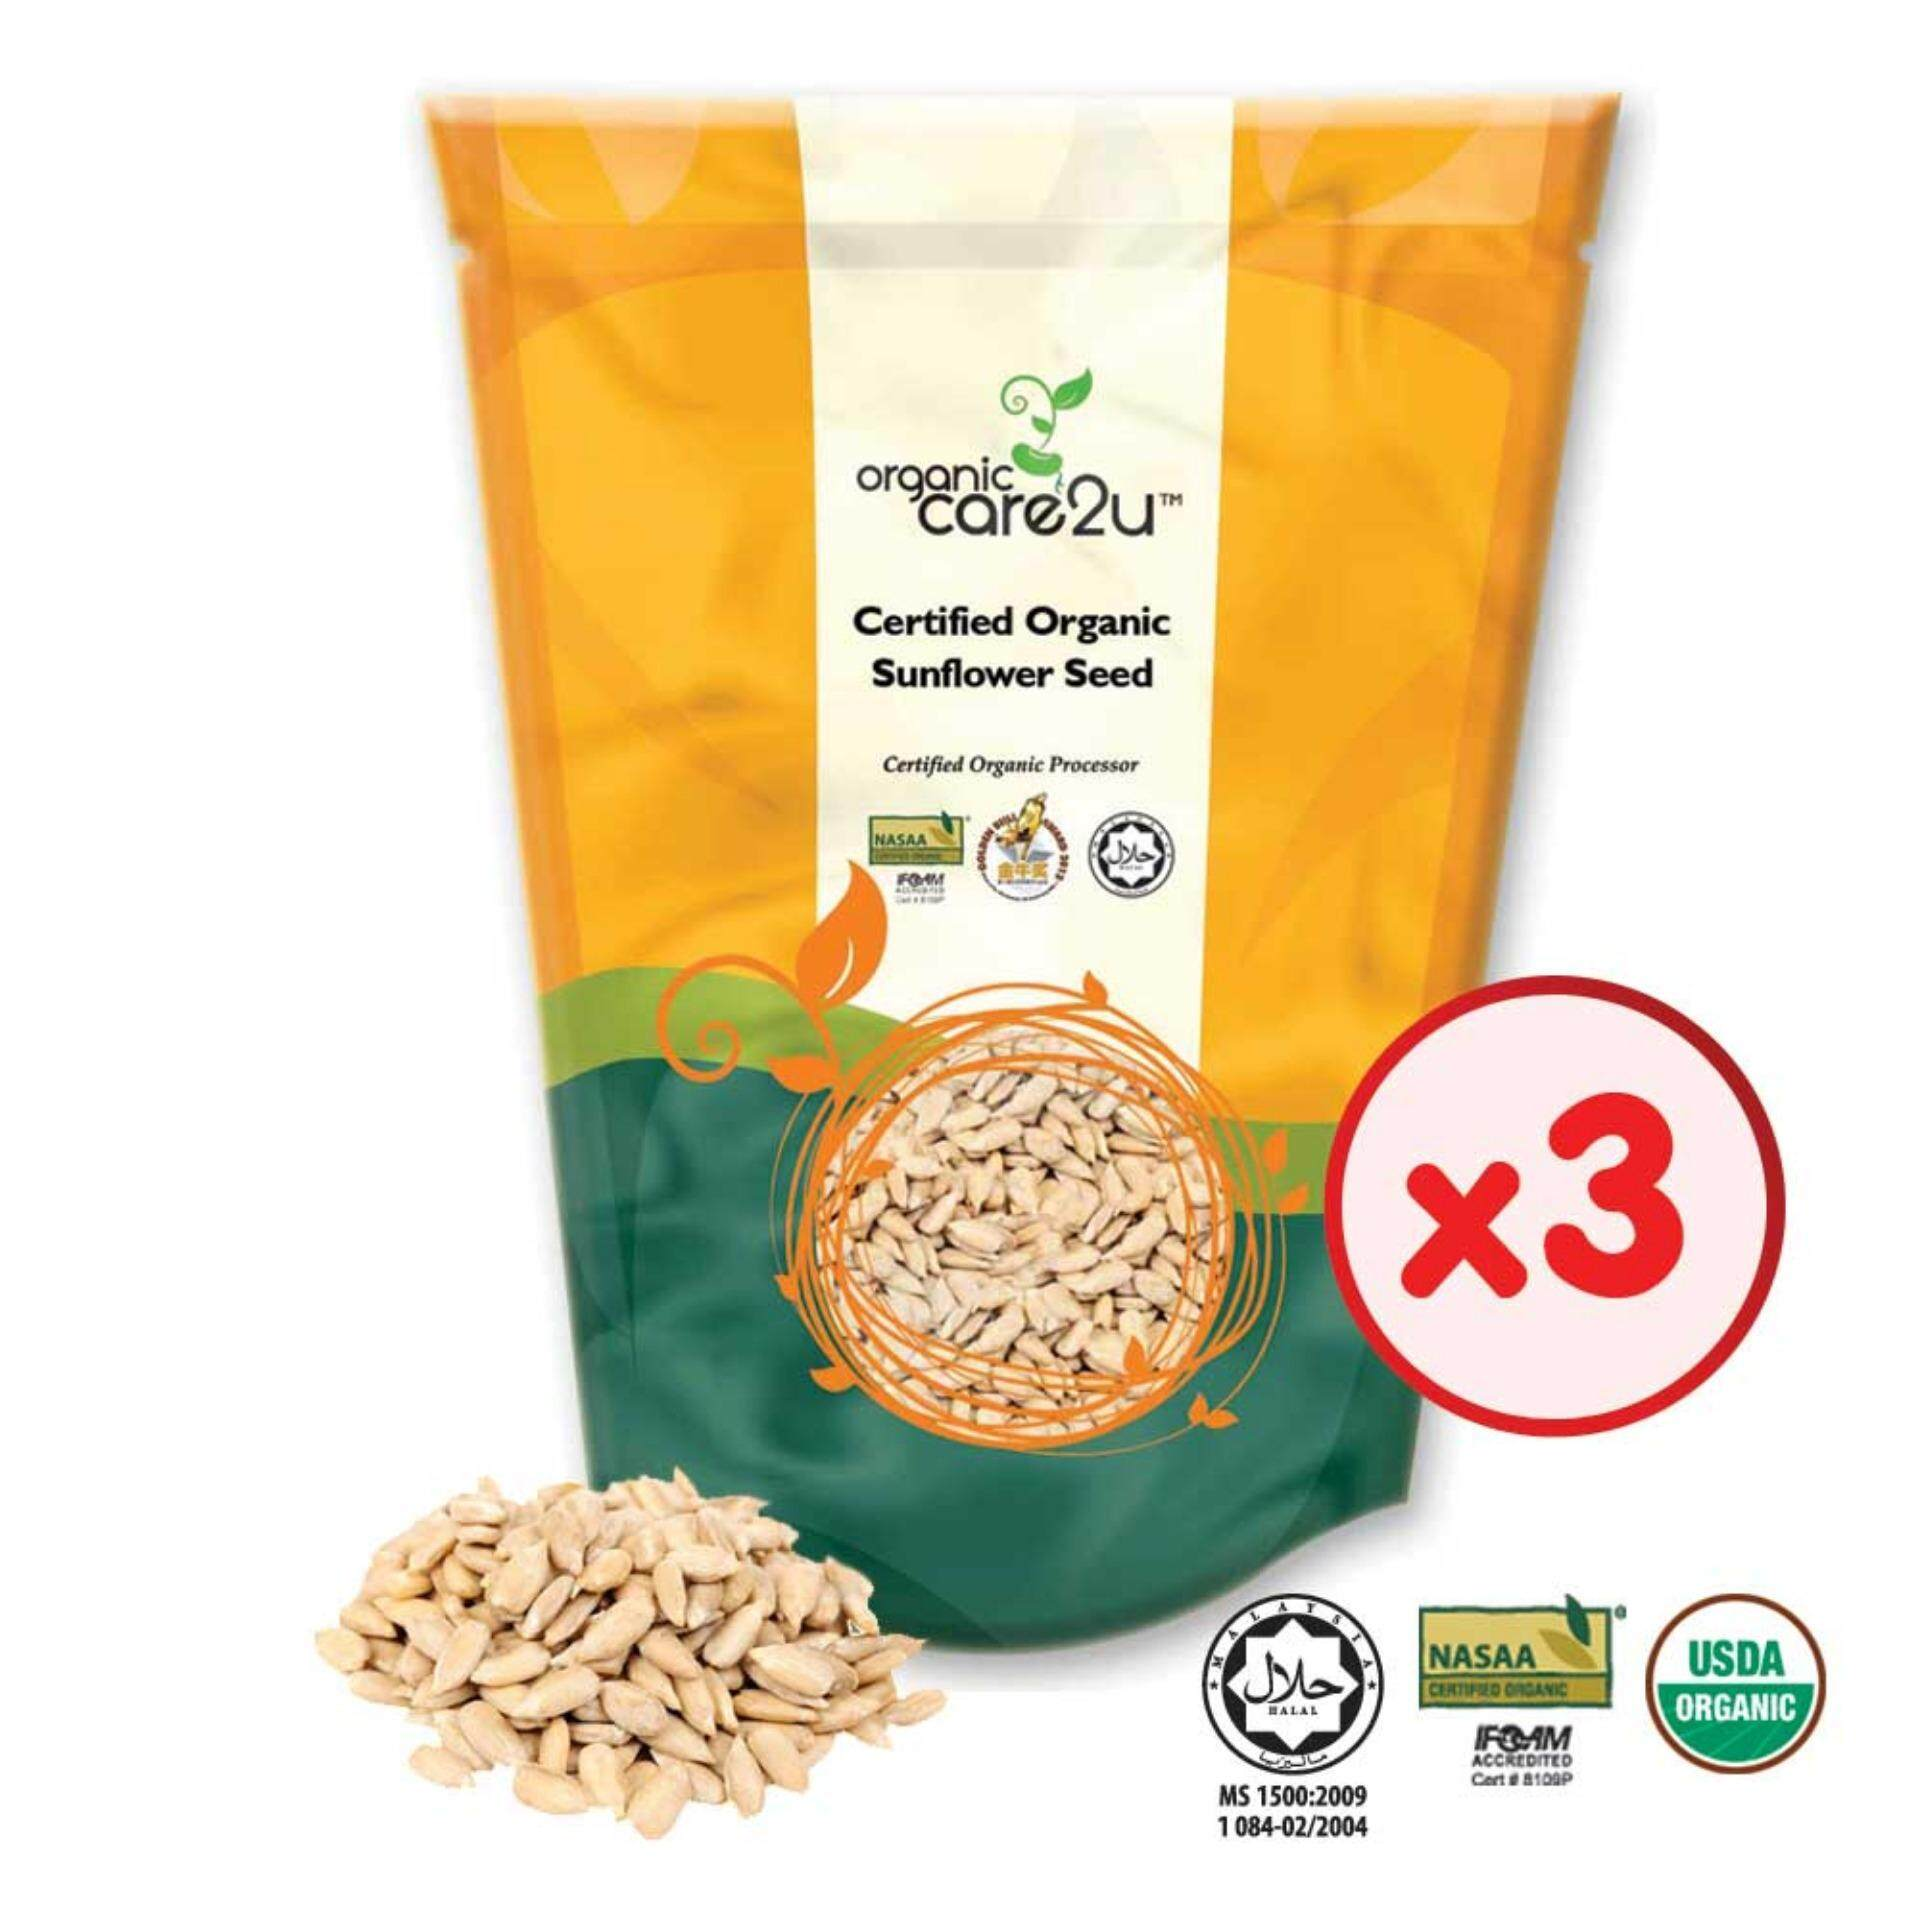 Organic Care2u Organic Sunflower Seed  (200g) - [Bundle of 3]